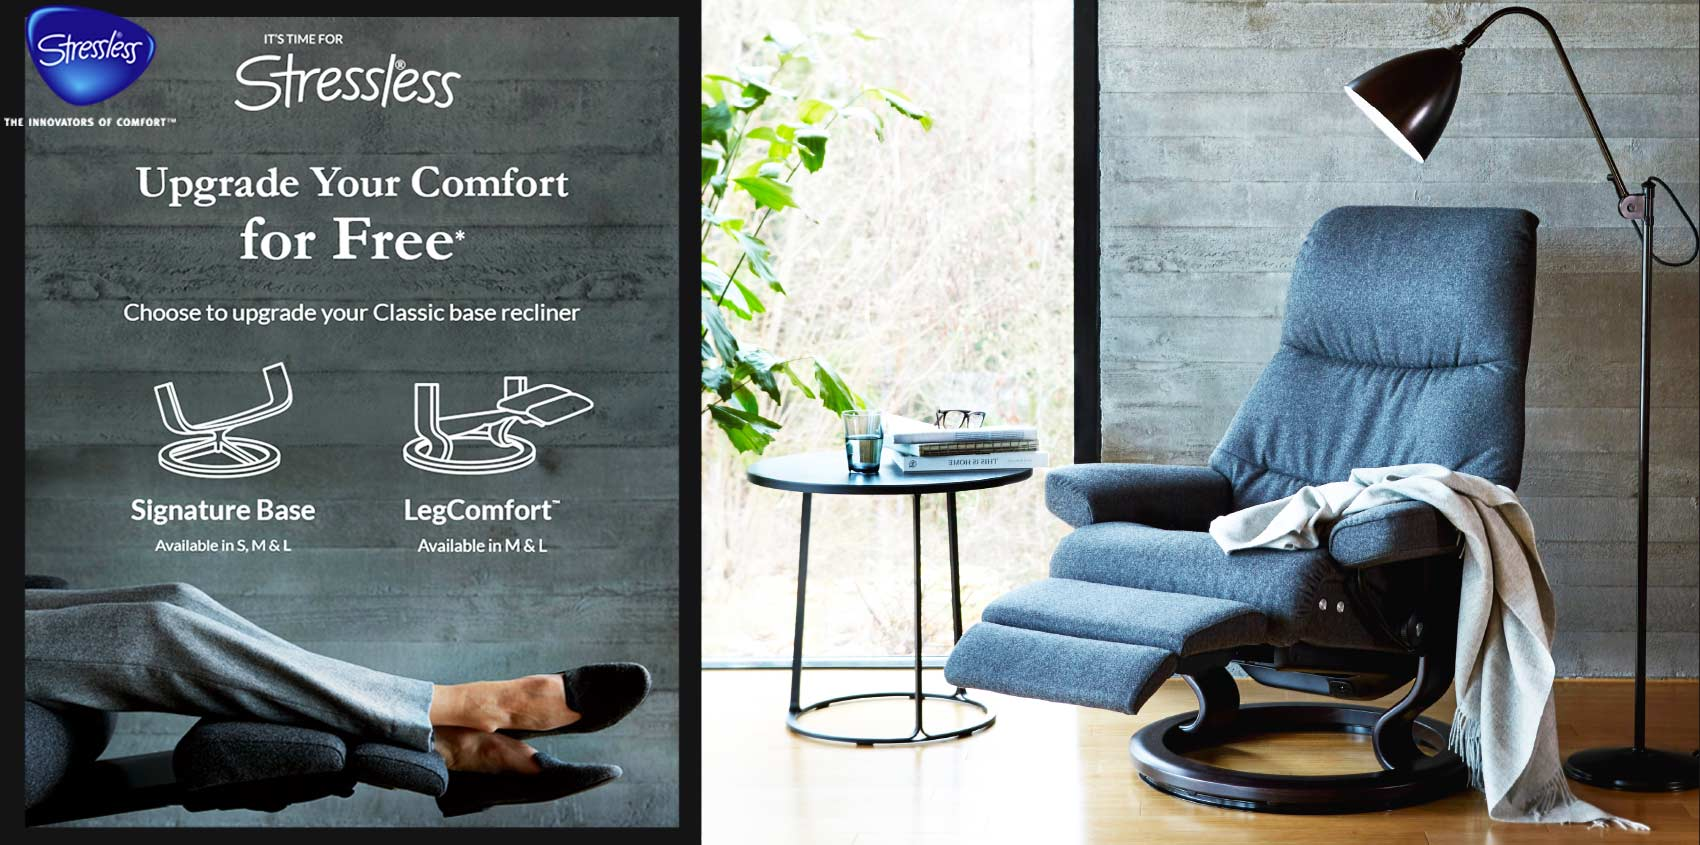 Stressless Spring Comfort upgrade 2019